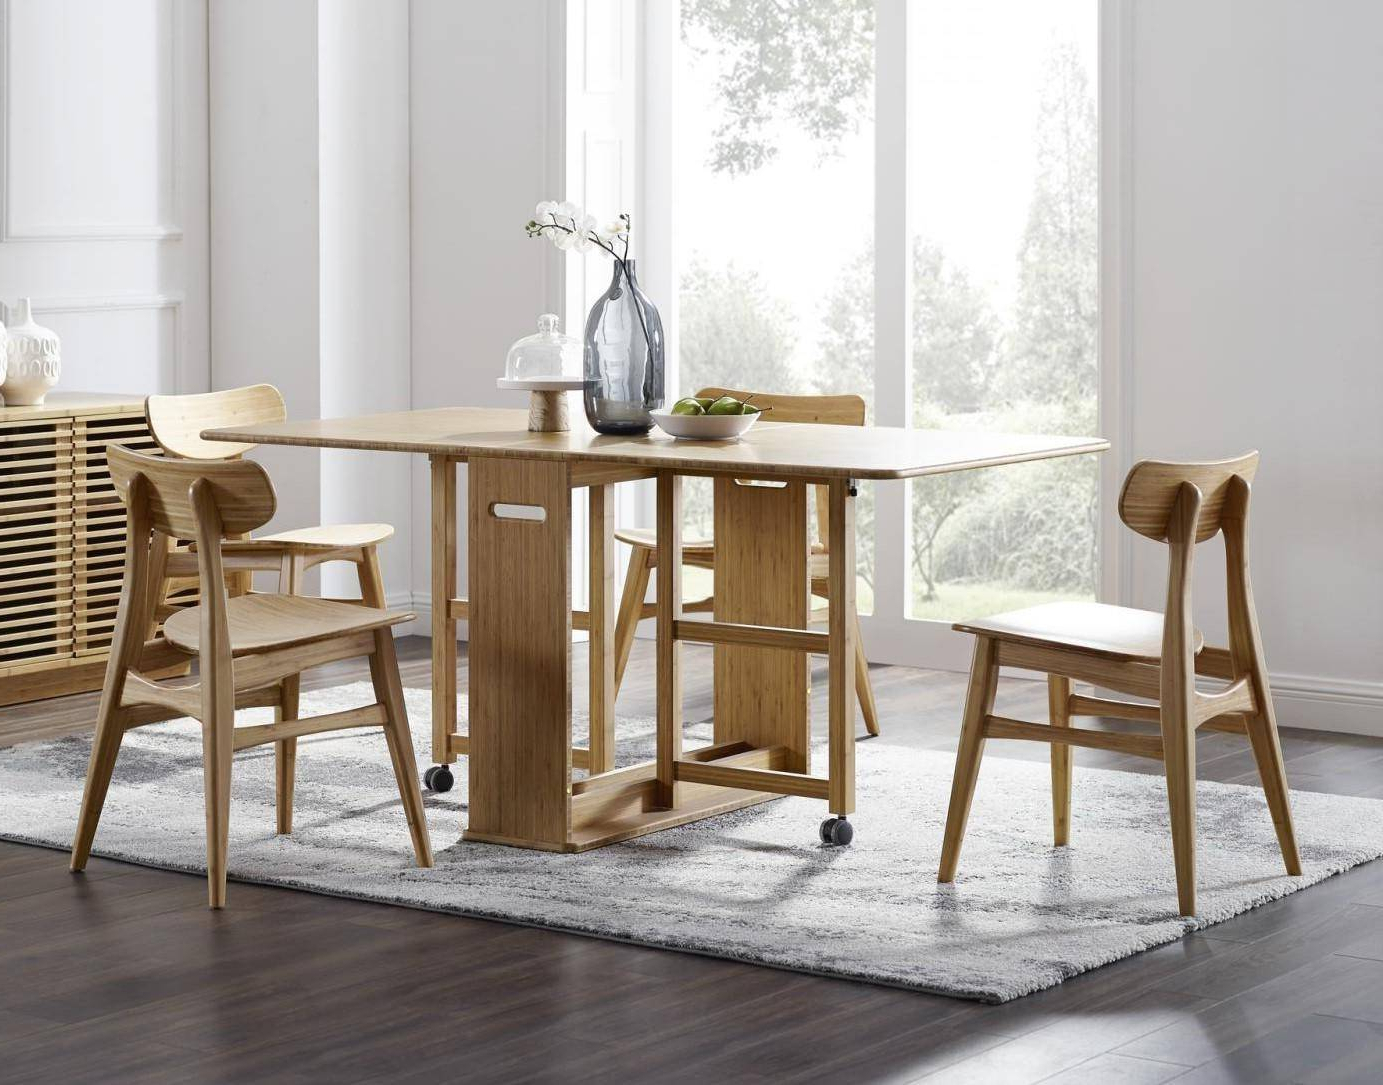 Linden Round Pedestal Dining Tables Pertaining To Well Known Bamboo Dining Table Set 5 Pcs Caramelized Modern Linden (View 20 of 25)